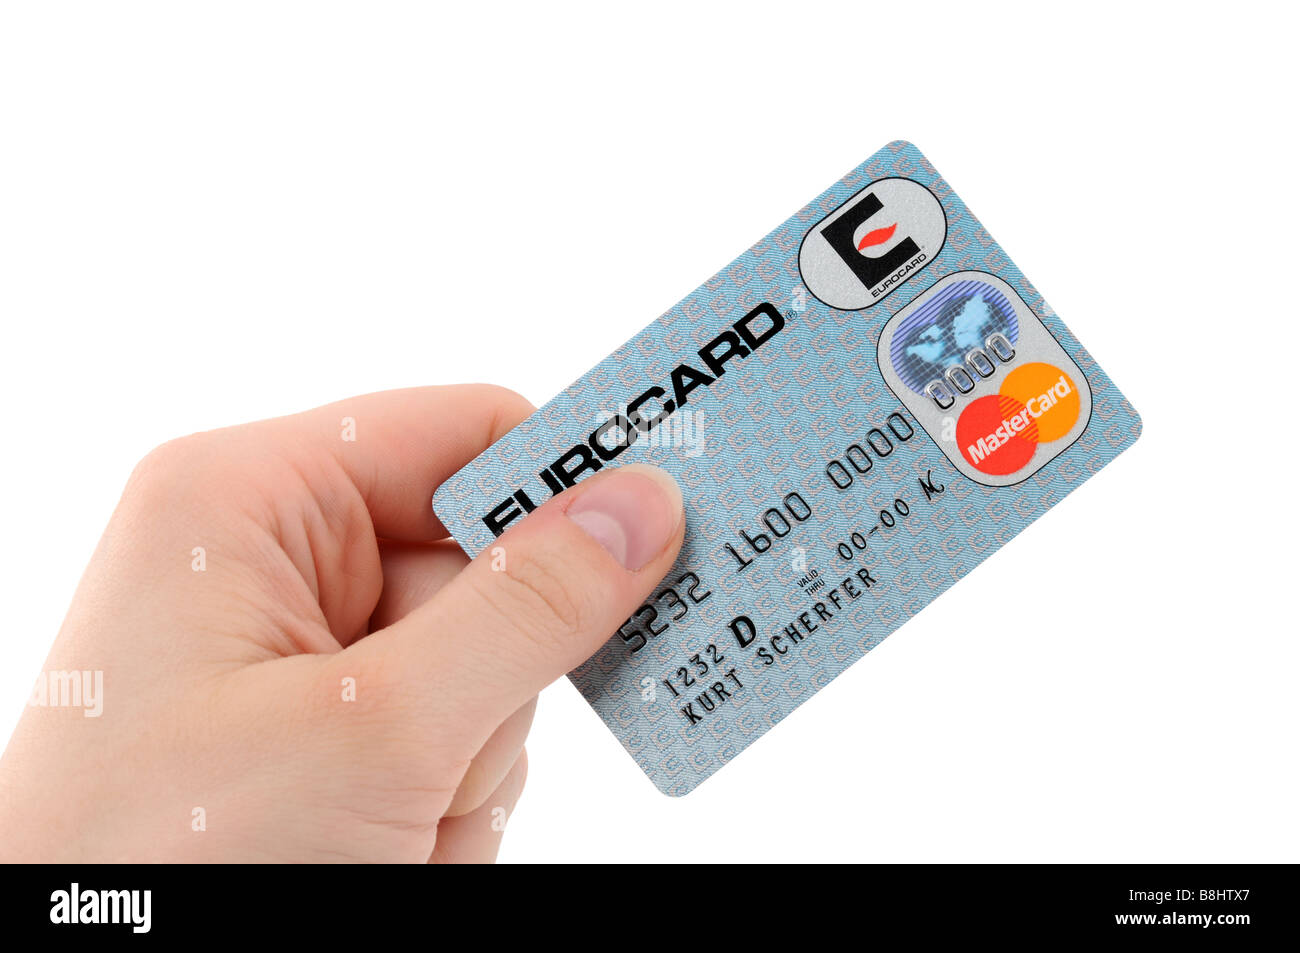 Eurocard Stock Photo 22520351 Alamy